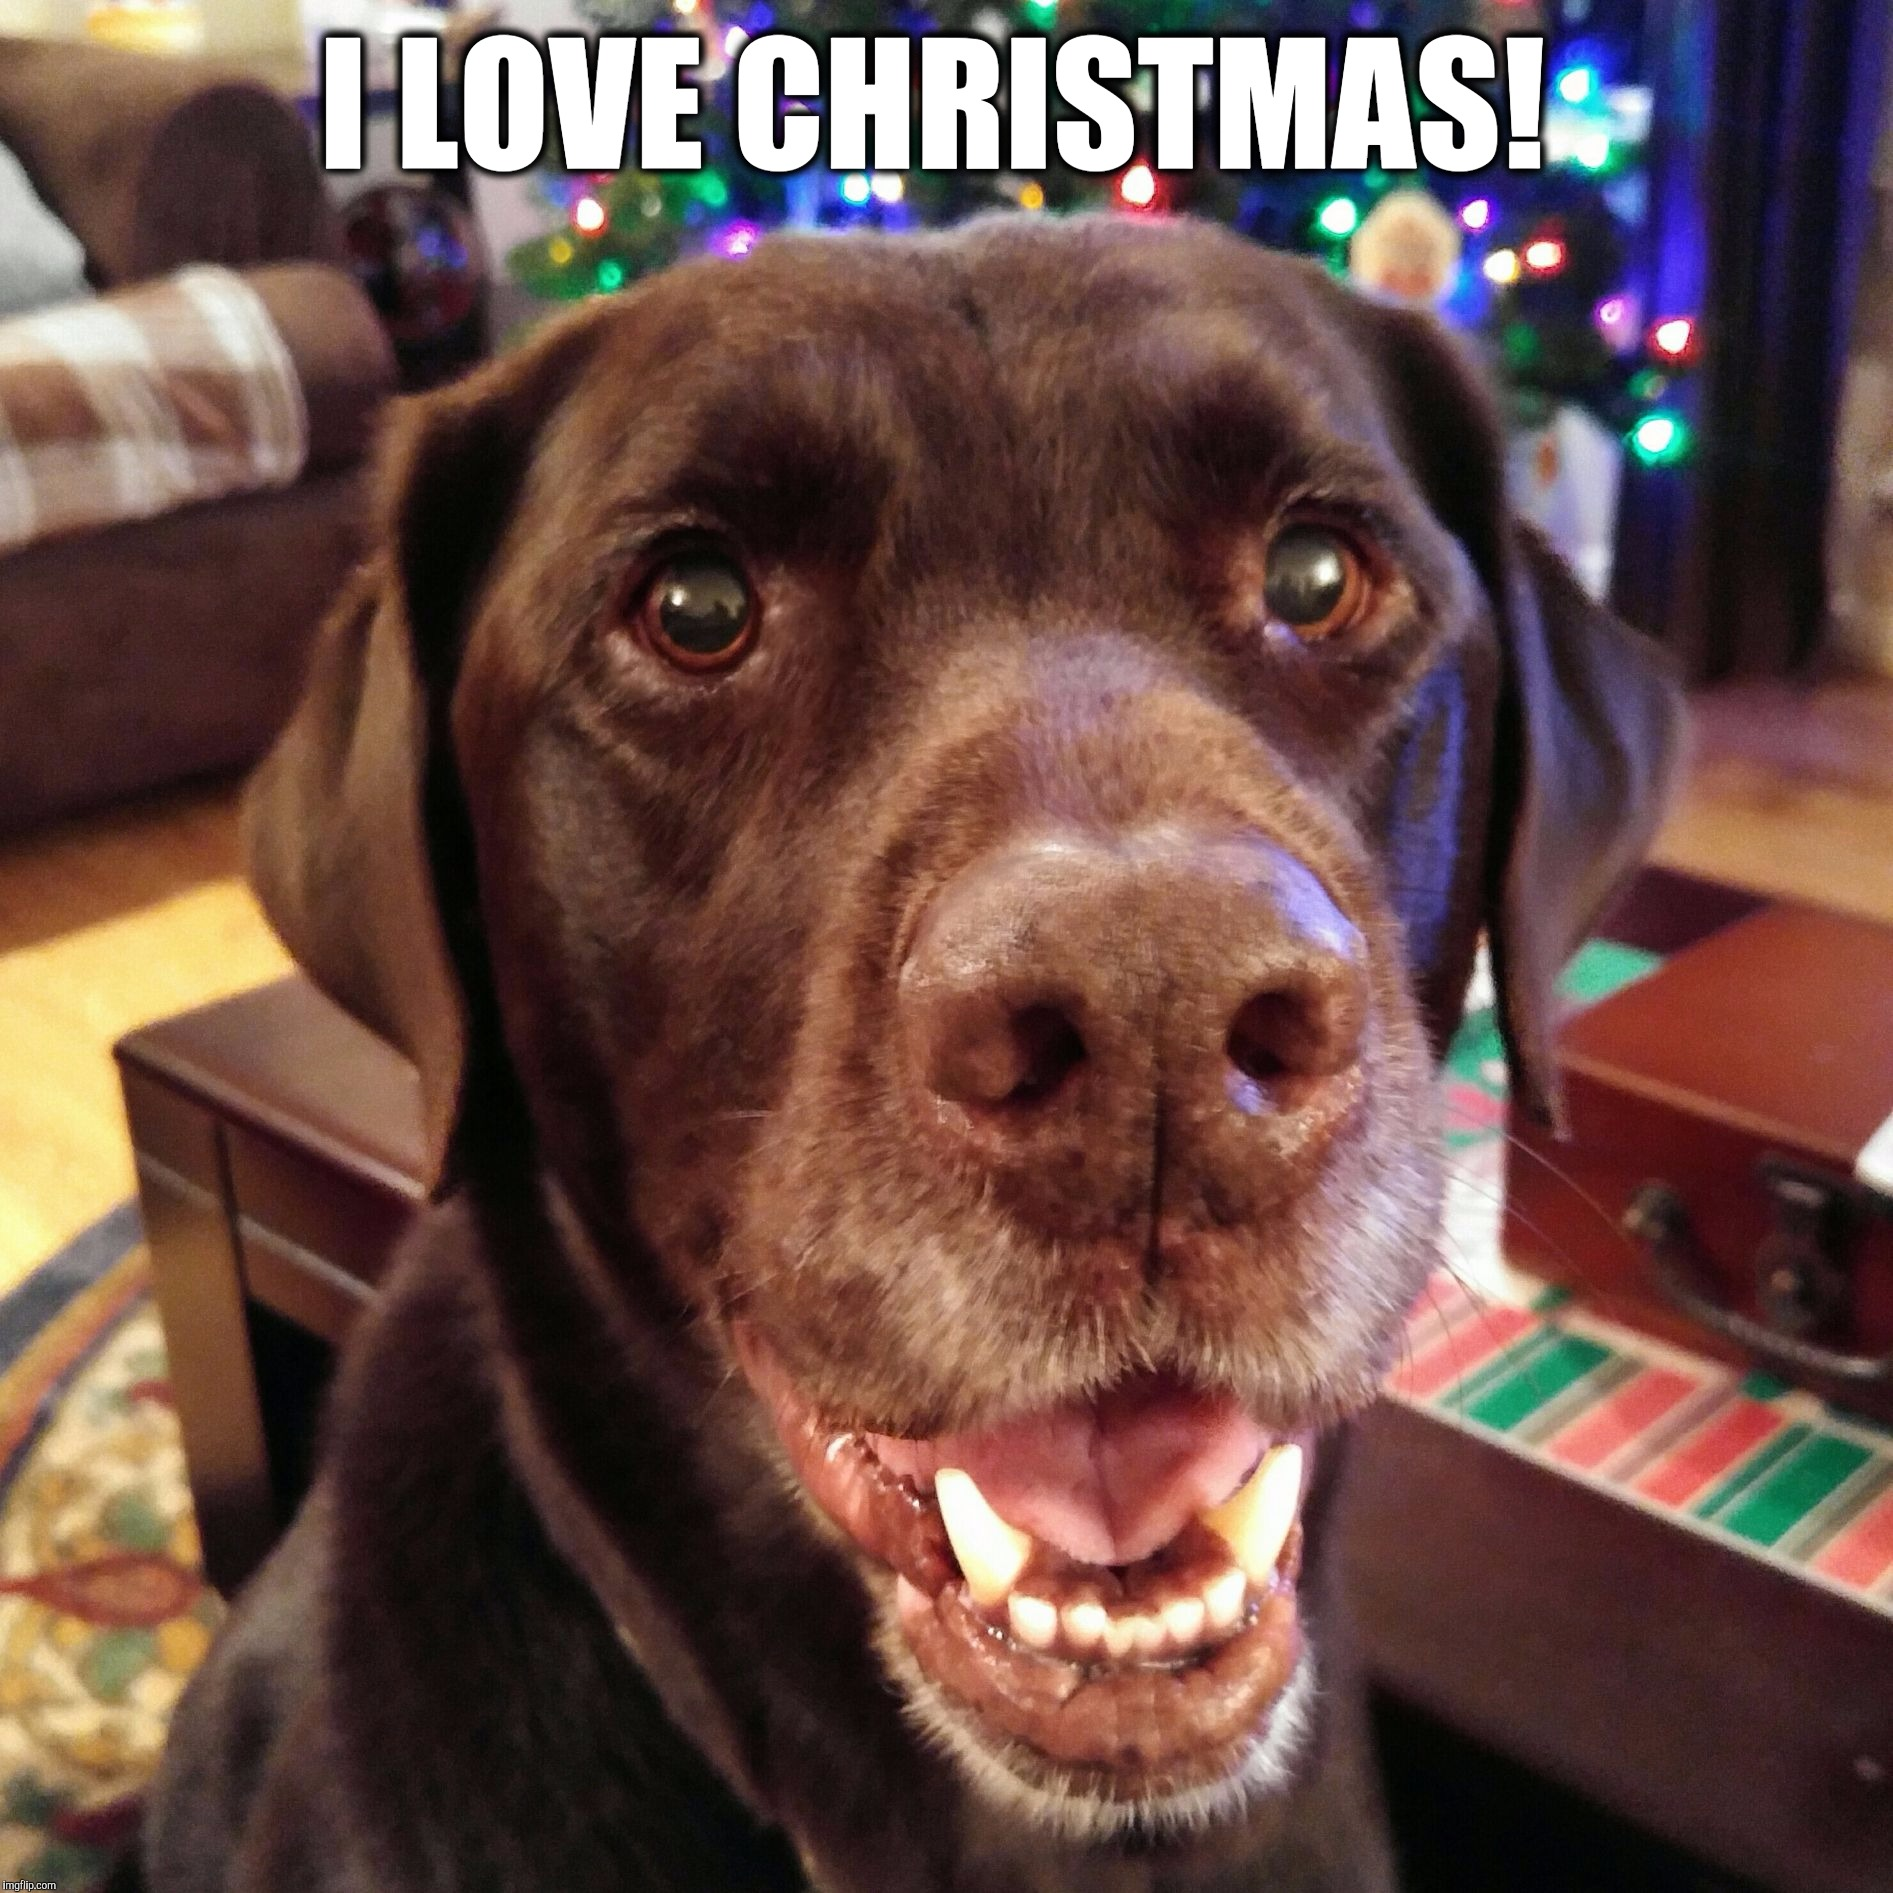 I love Christmas!  | I LOVE CHRISTMAS! | image tagged in chuckie the chocolate lab,christmas,dog,smile,labrador,holidays | made w/ Imgflip meme maker